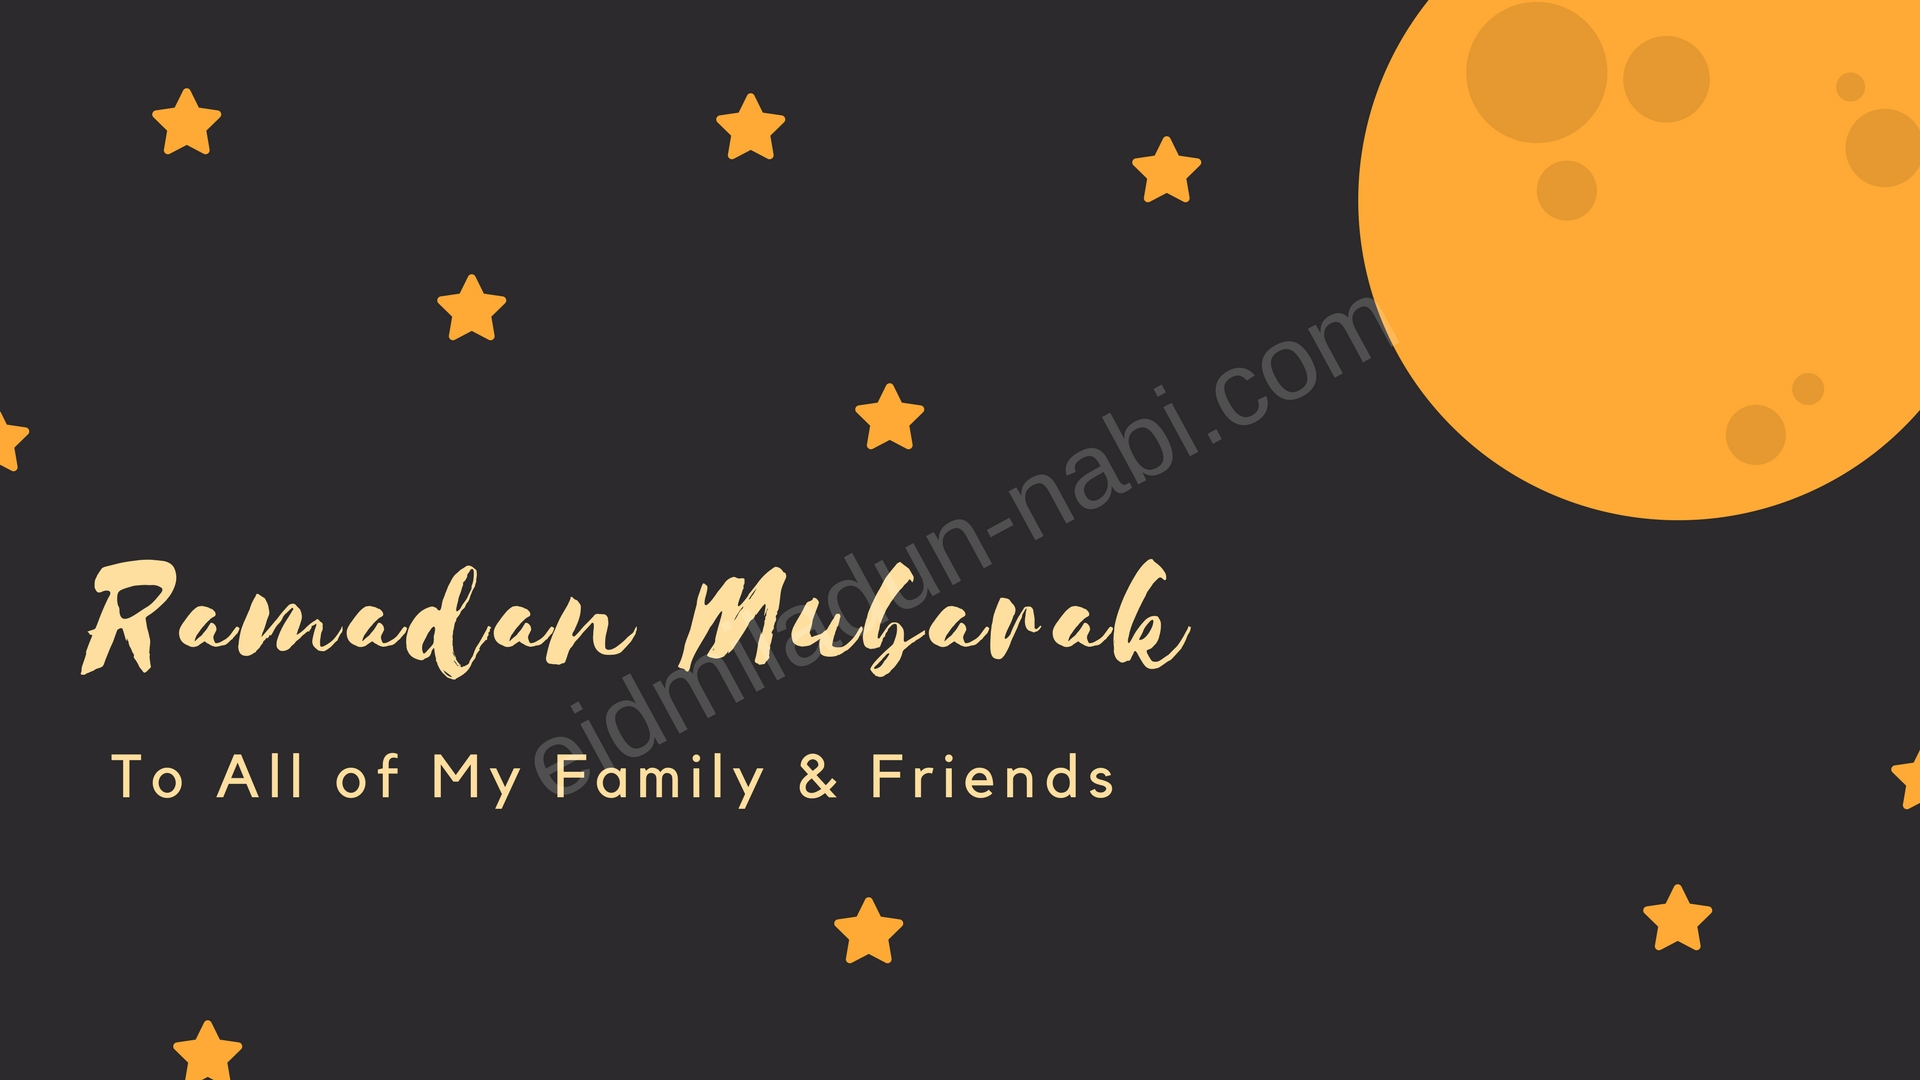 Happy Ramadan Wishes in Advance Greetings Sms Messages 2019 1920x1080